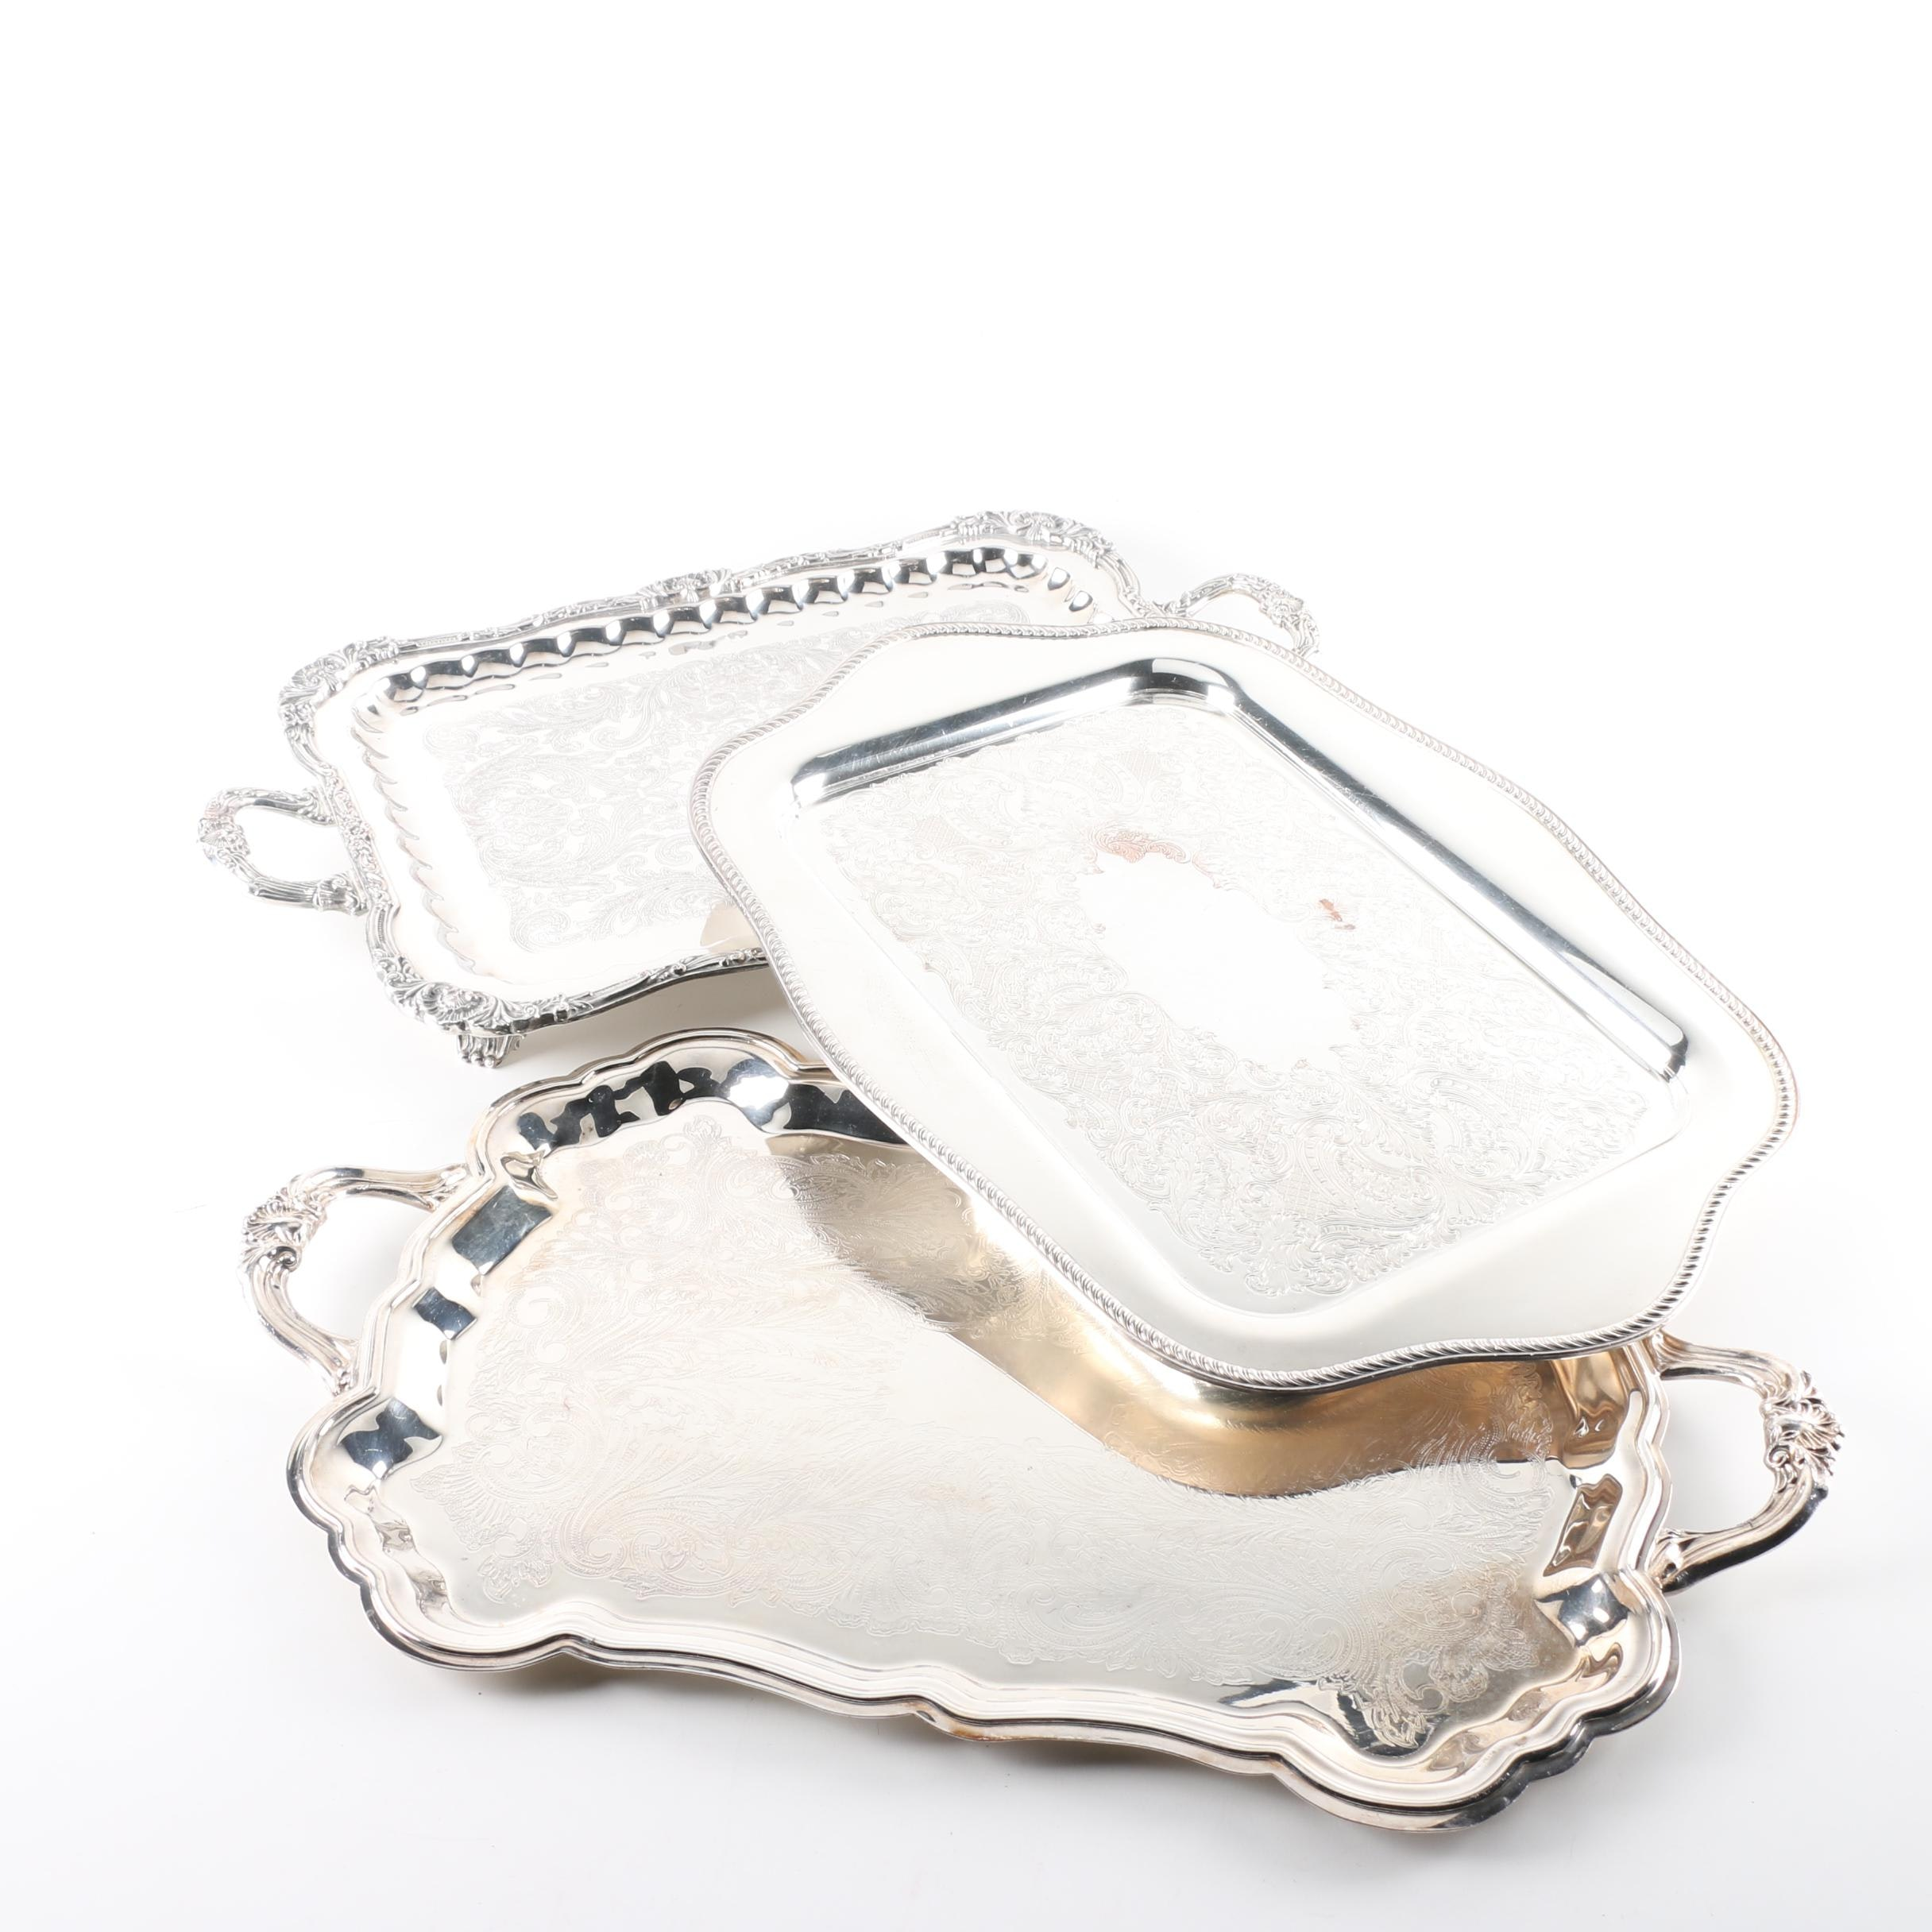 Wm. A. Rogers Silver Plate Tray and Other Silver Plate Trays